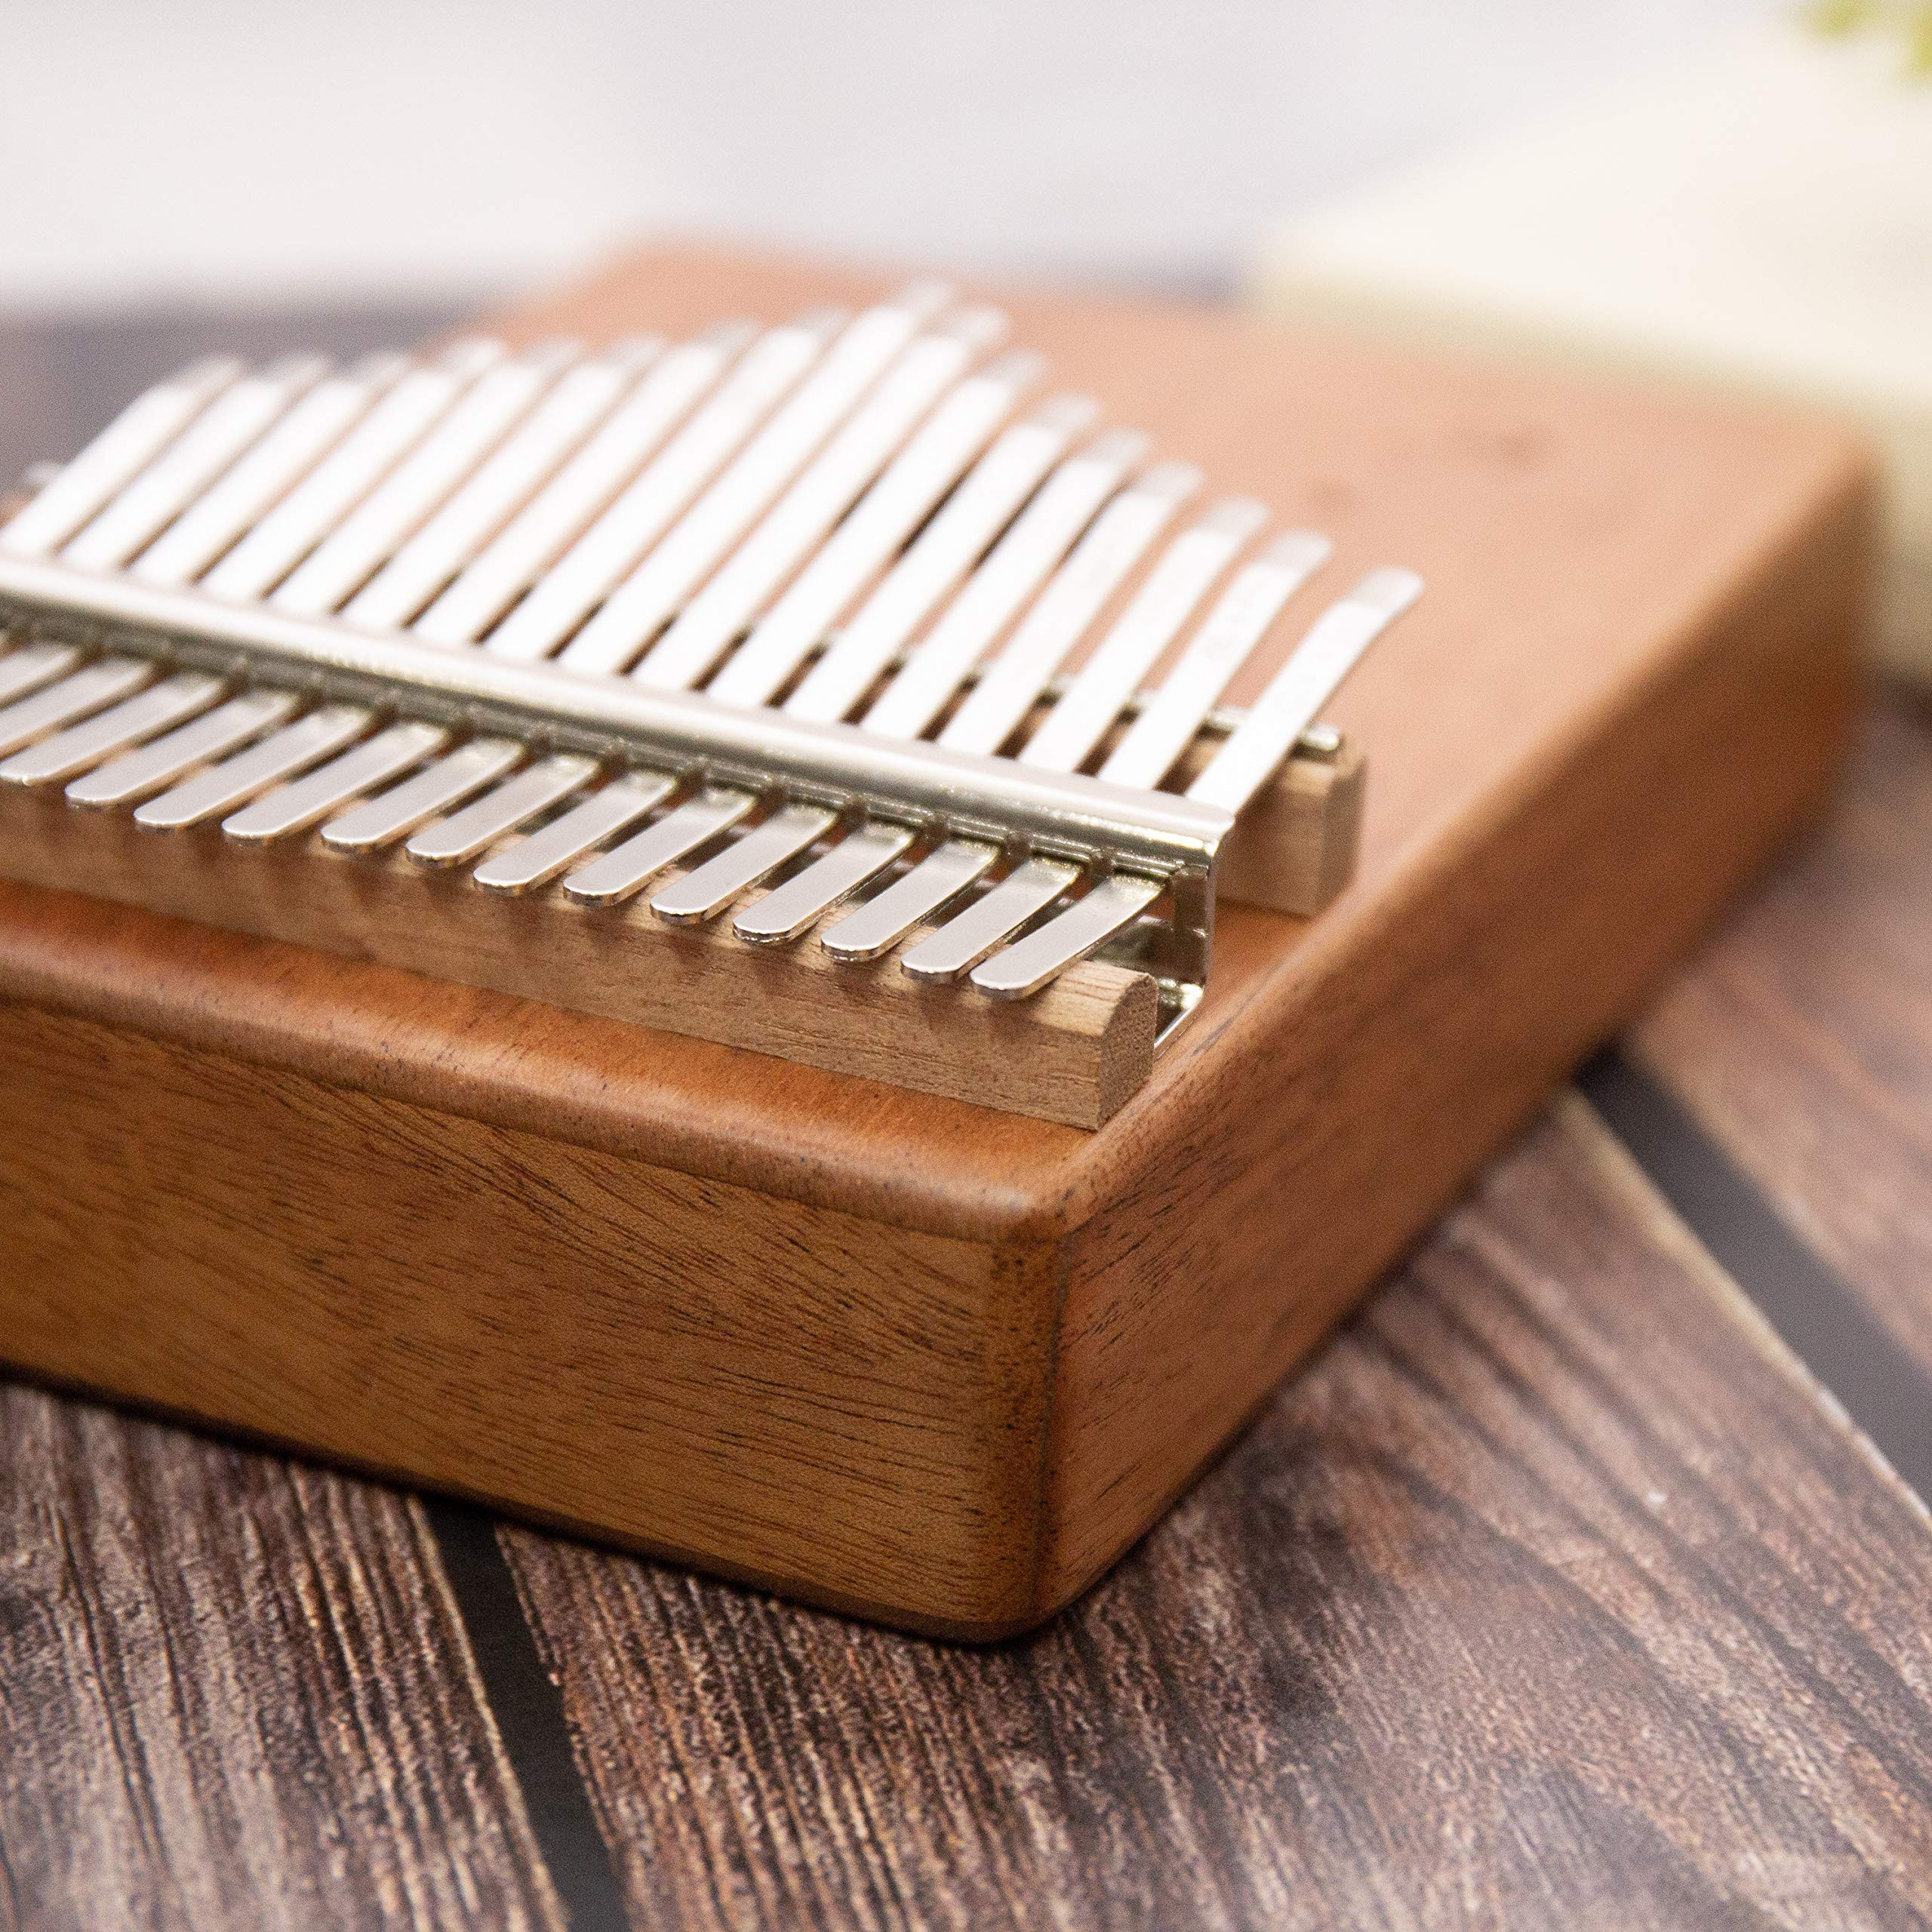 Kalimba 17 Keys Thumb Finger Piano - Mbira - Solid Mahogany and Portable with Carrying Bag and Instructions by GSM Brands (Image #6)